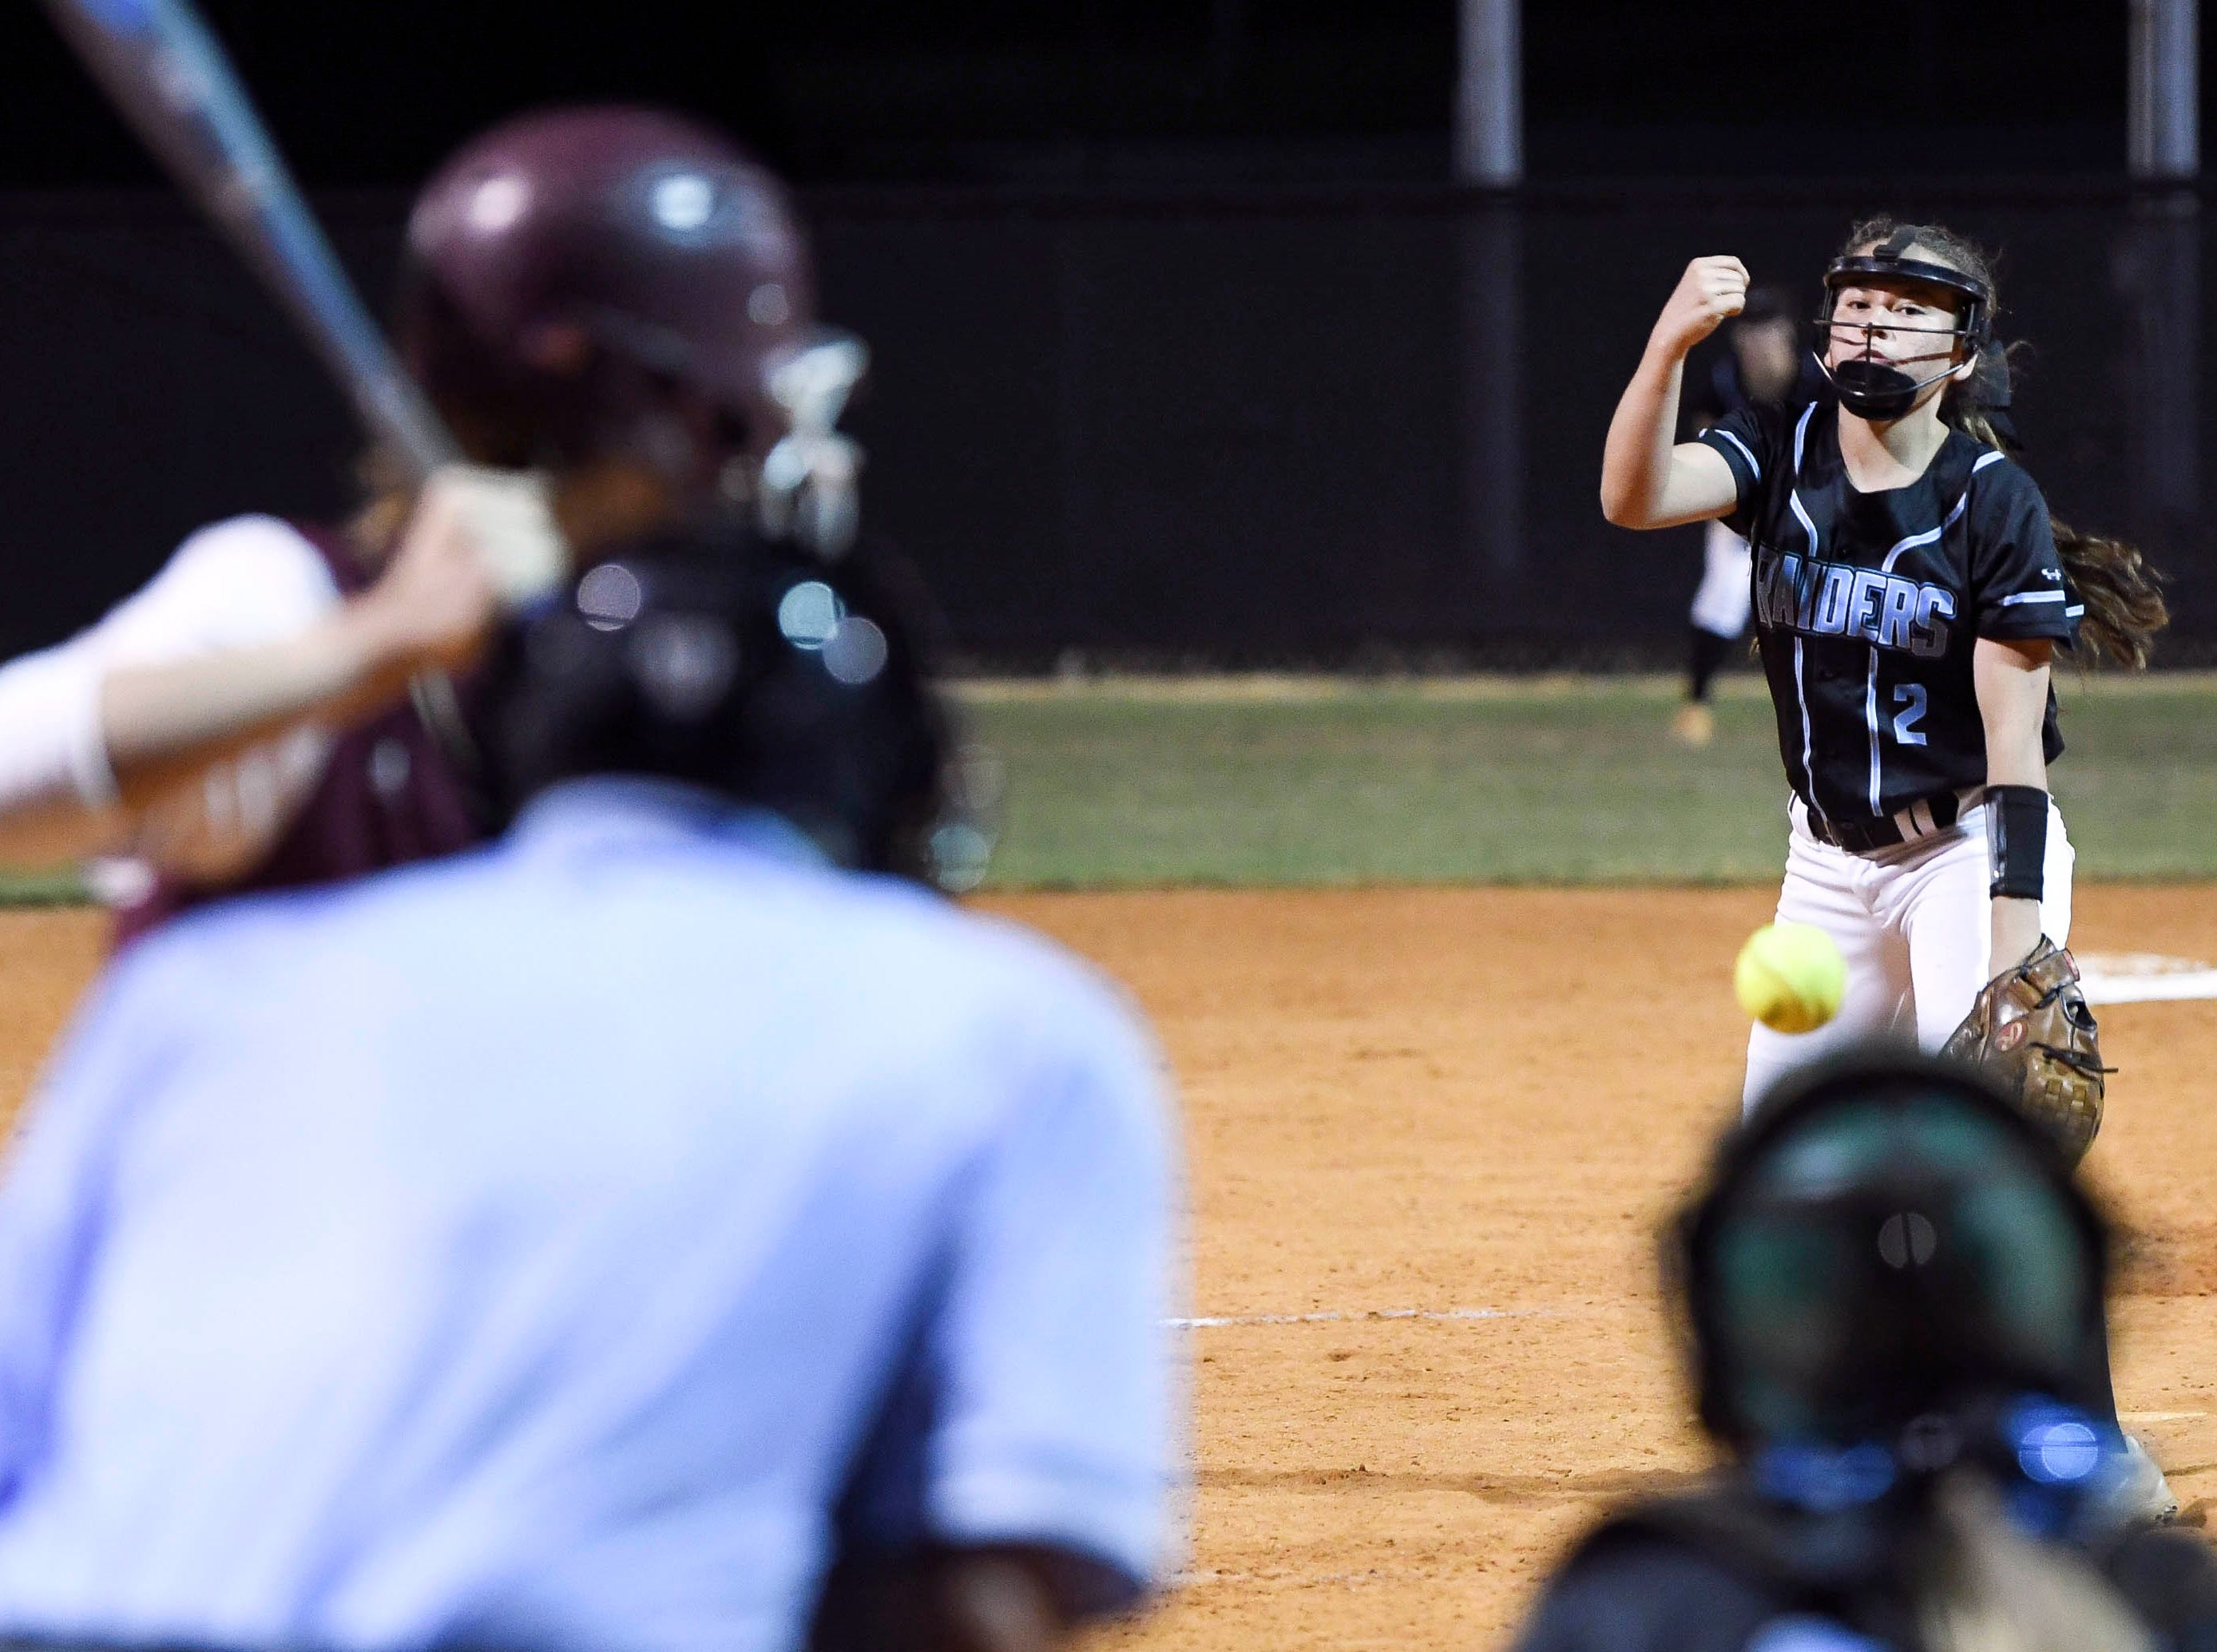 Jenna Garza pitches for Rockledge during Wednesday's game against Astronaut.